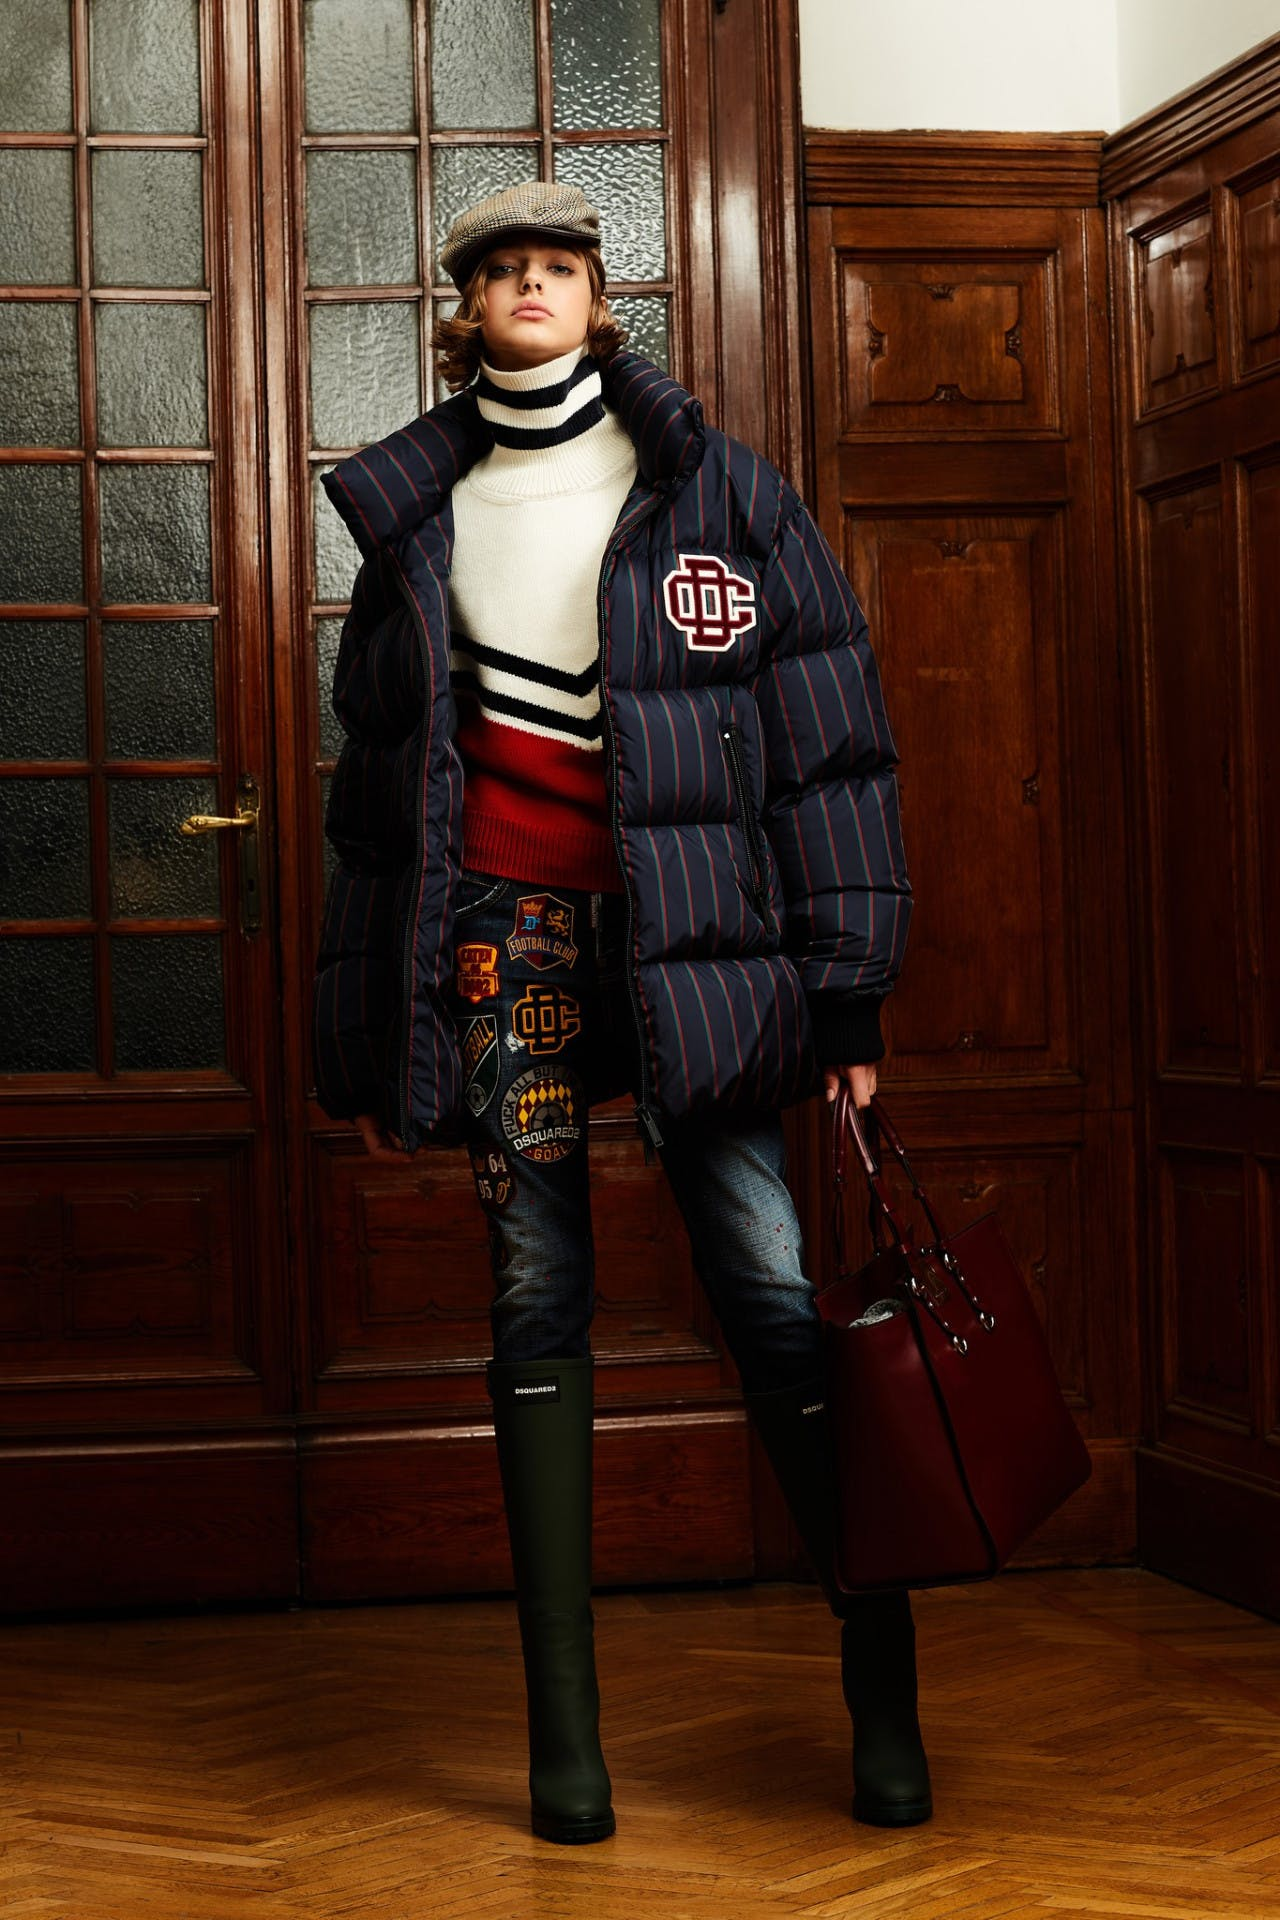 dsquared2 pre fall milan fashion runway backstage pre order trunk show womenswear stripe jacket showroom